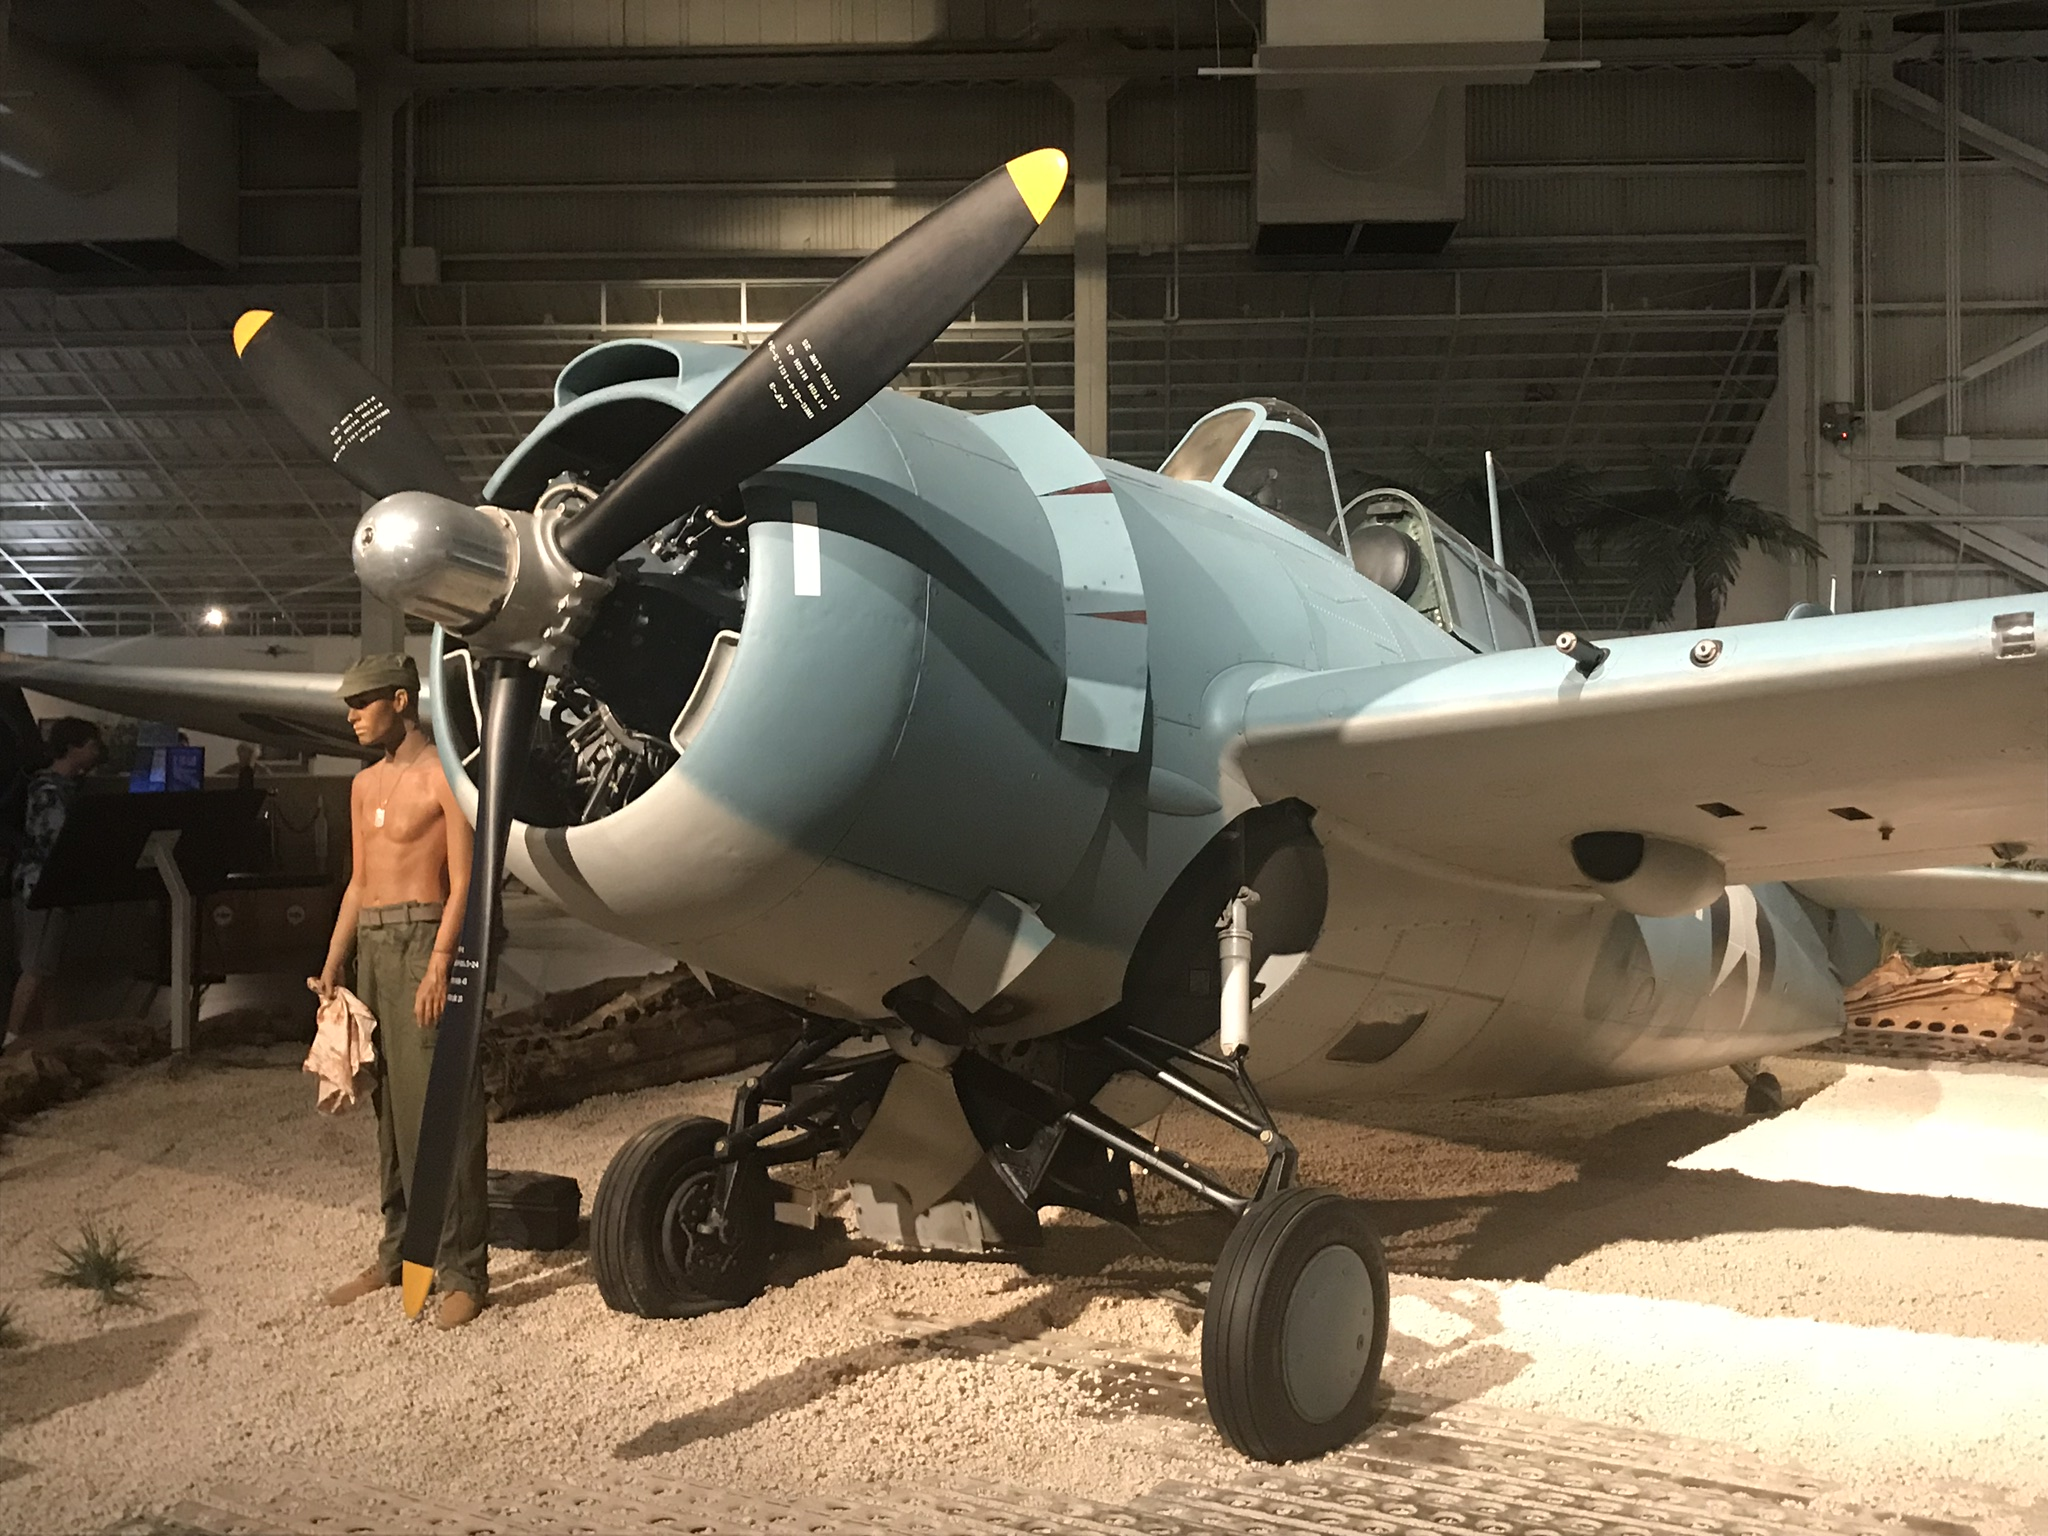 Wildcat at the Pearl Harbor Aviation Museum